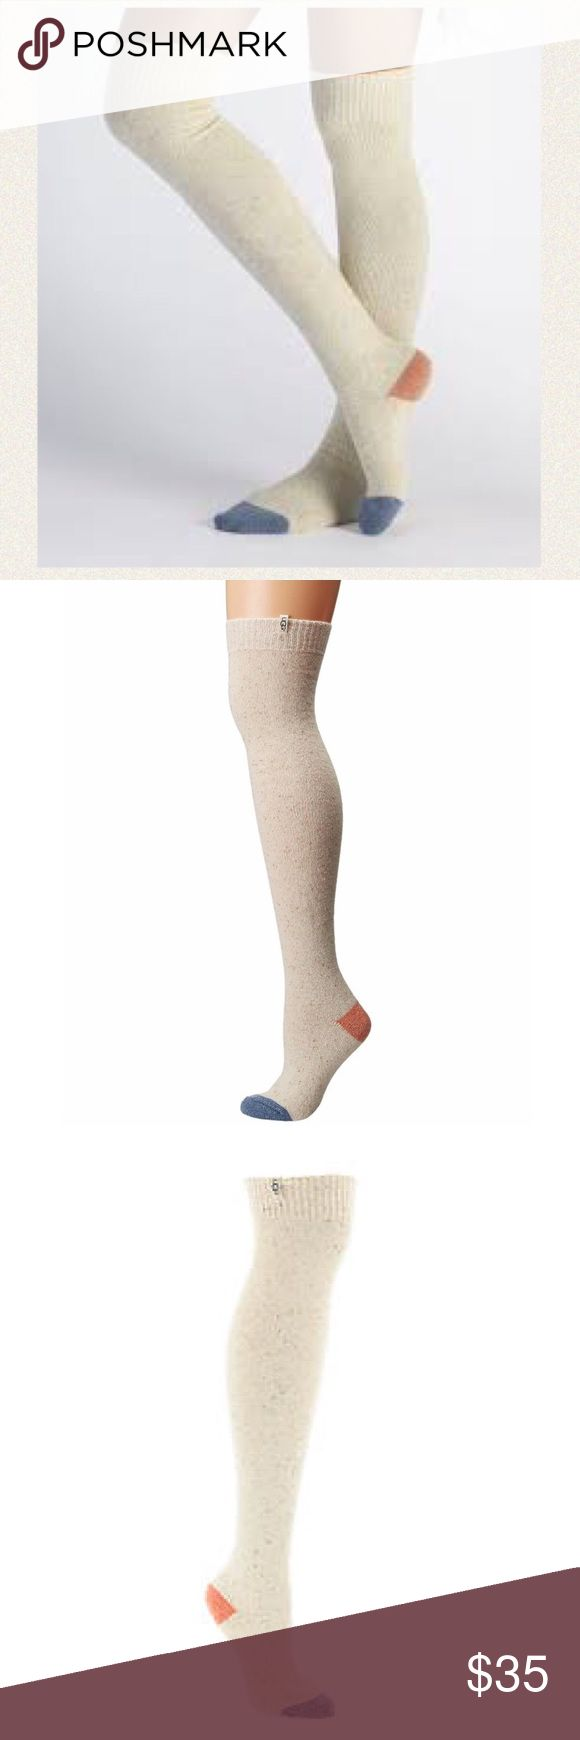 """NWT Ugg Colorblock Ribbed Over the Knee Sock These comfy over-the-knee socks are a must have for the winter season.  22"""" over-the-knee height.  Contrast color toe and heel.  Wool blend.  Fits shoe sizes 5-10.  Color: Freshwater Pearl. UGG Accessories Hosiery & Socks"""